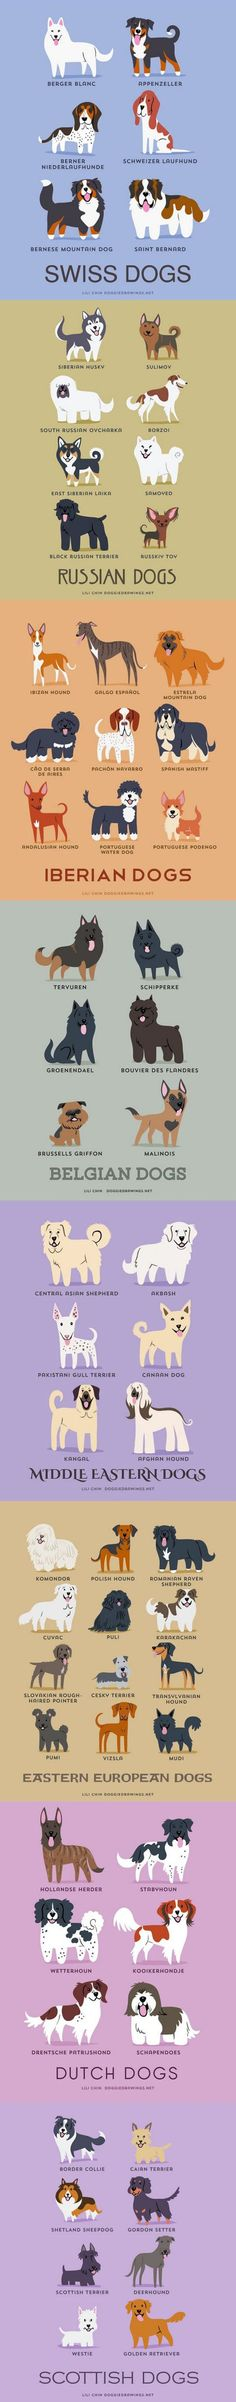 Dogs of the World by Lili Chin, DoggieDrawings.net - Buy Lili's art on Etsy and Society6. #dogbreeds #infographic #art